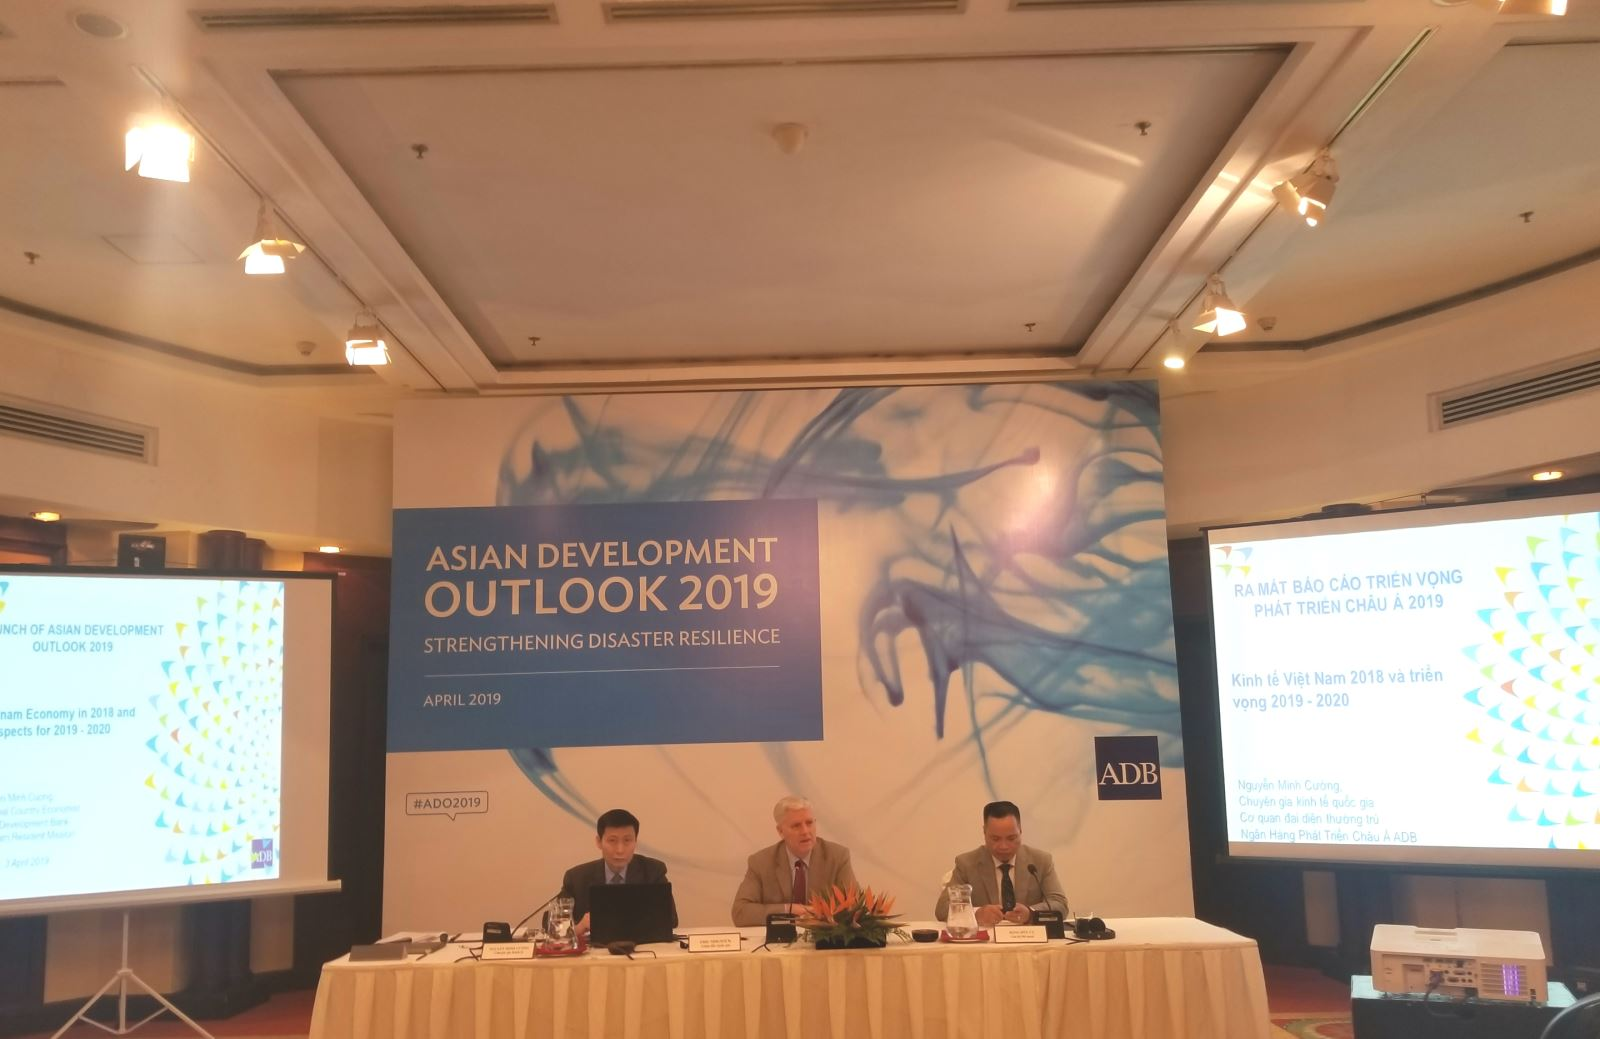 Vietnam's economy forecast to grow at 6.8% in 2019 amid weakening global outlook: ADB, vietnam economy, business news, vn news, vietnamnet bridge, english news, Vietnam news, news Vietnam, vietnamnet news, vn news, Vietnam net news, Vietnam latest news, V